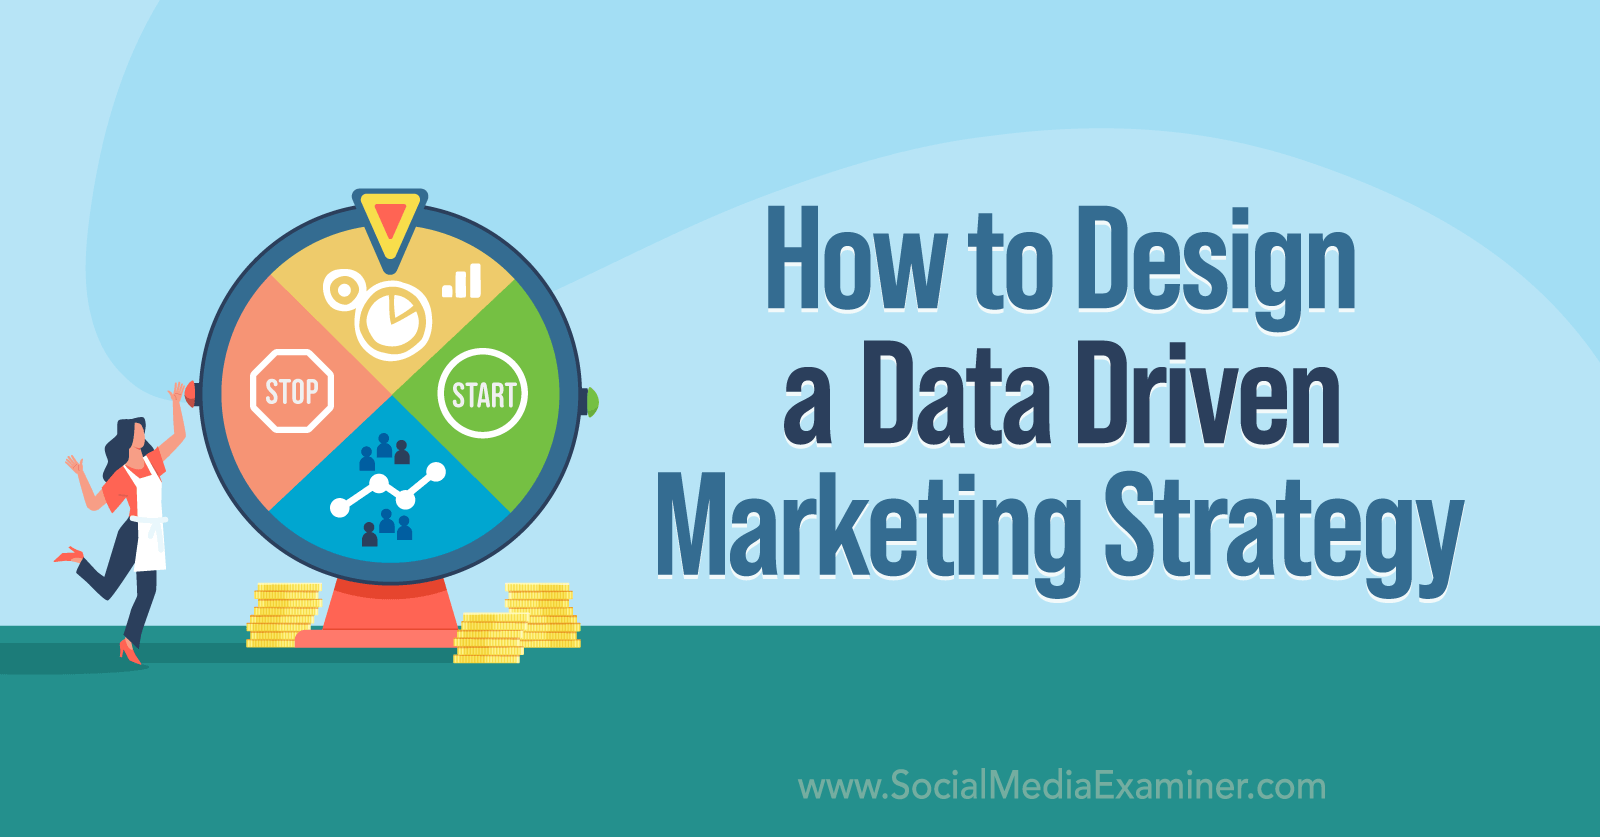 How to Design a Data-Driven Marketing Strategy featuring insights from Brie Anderson on the Social Media Marketing Podcast.